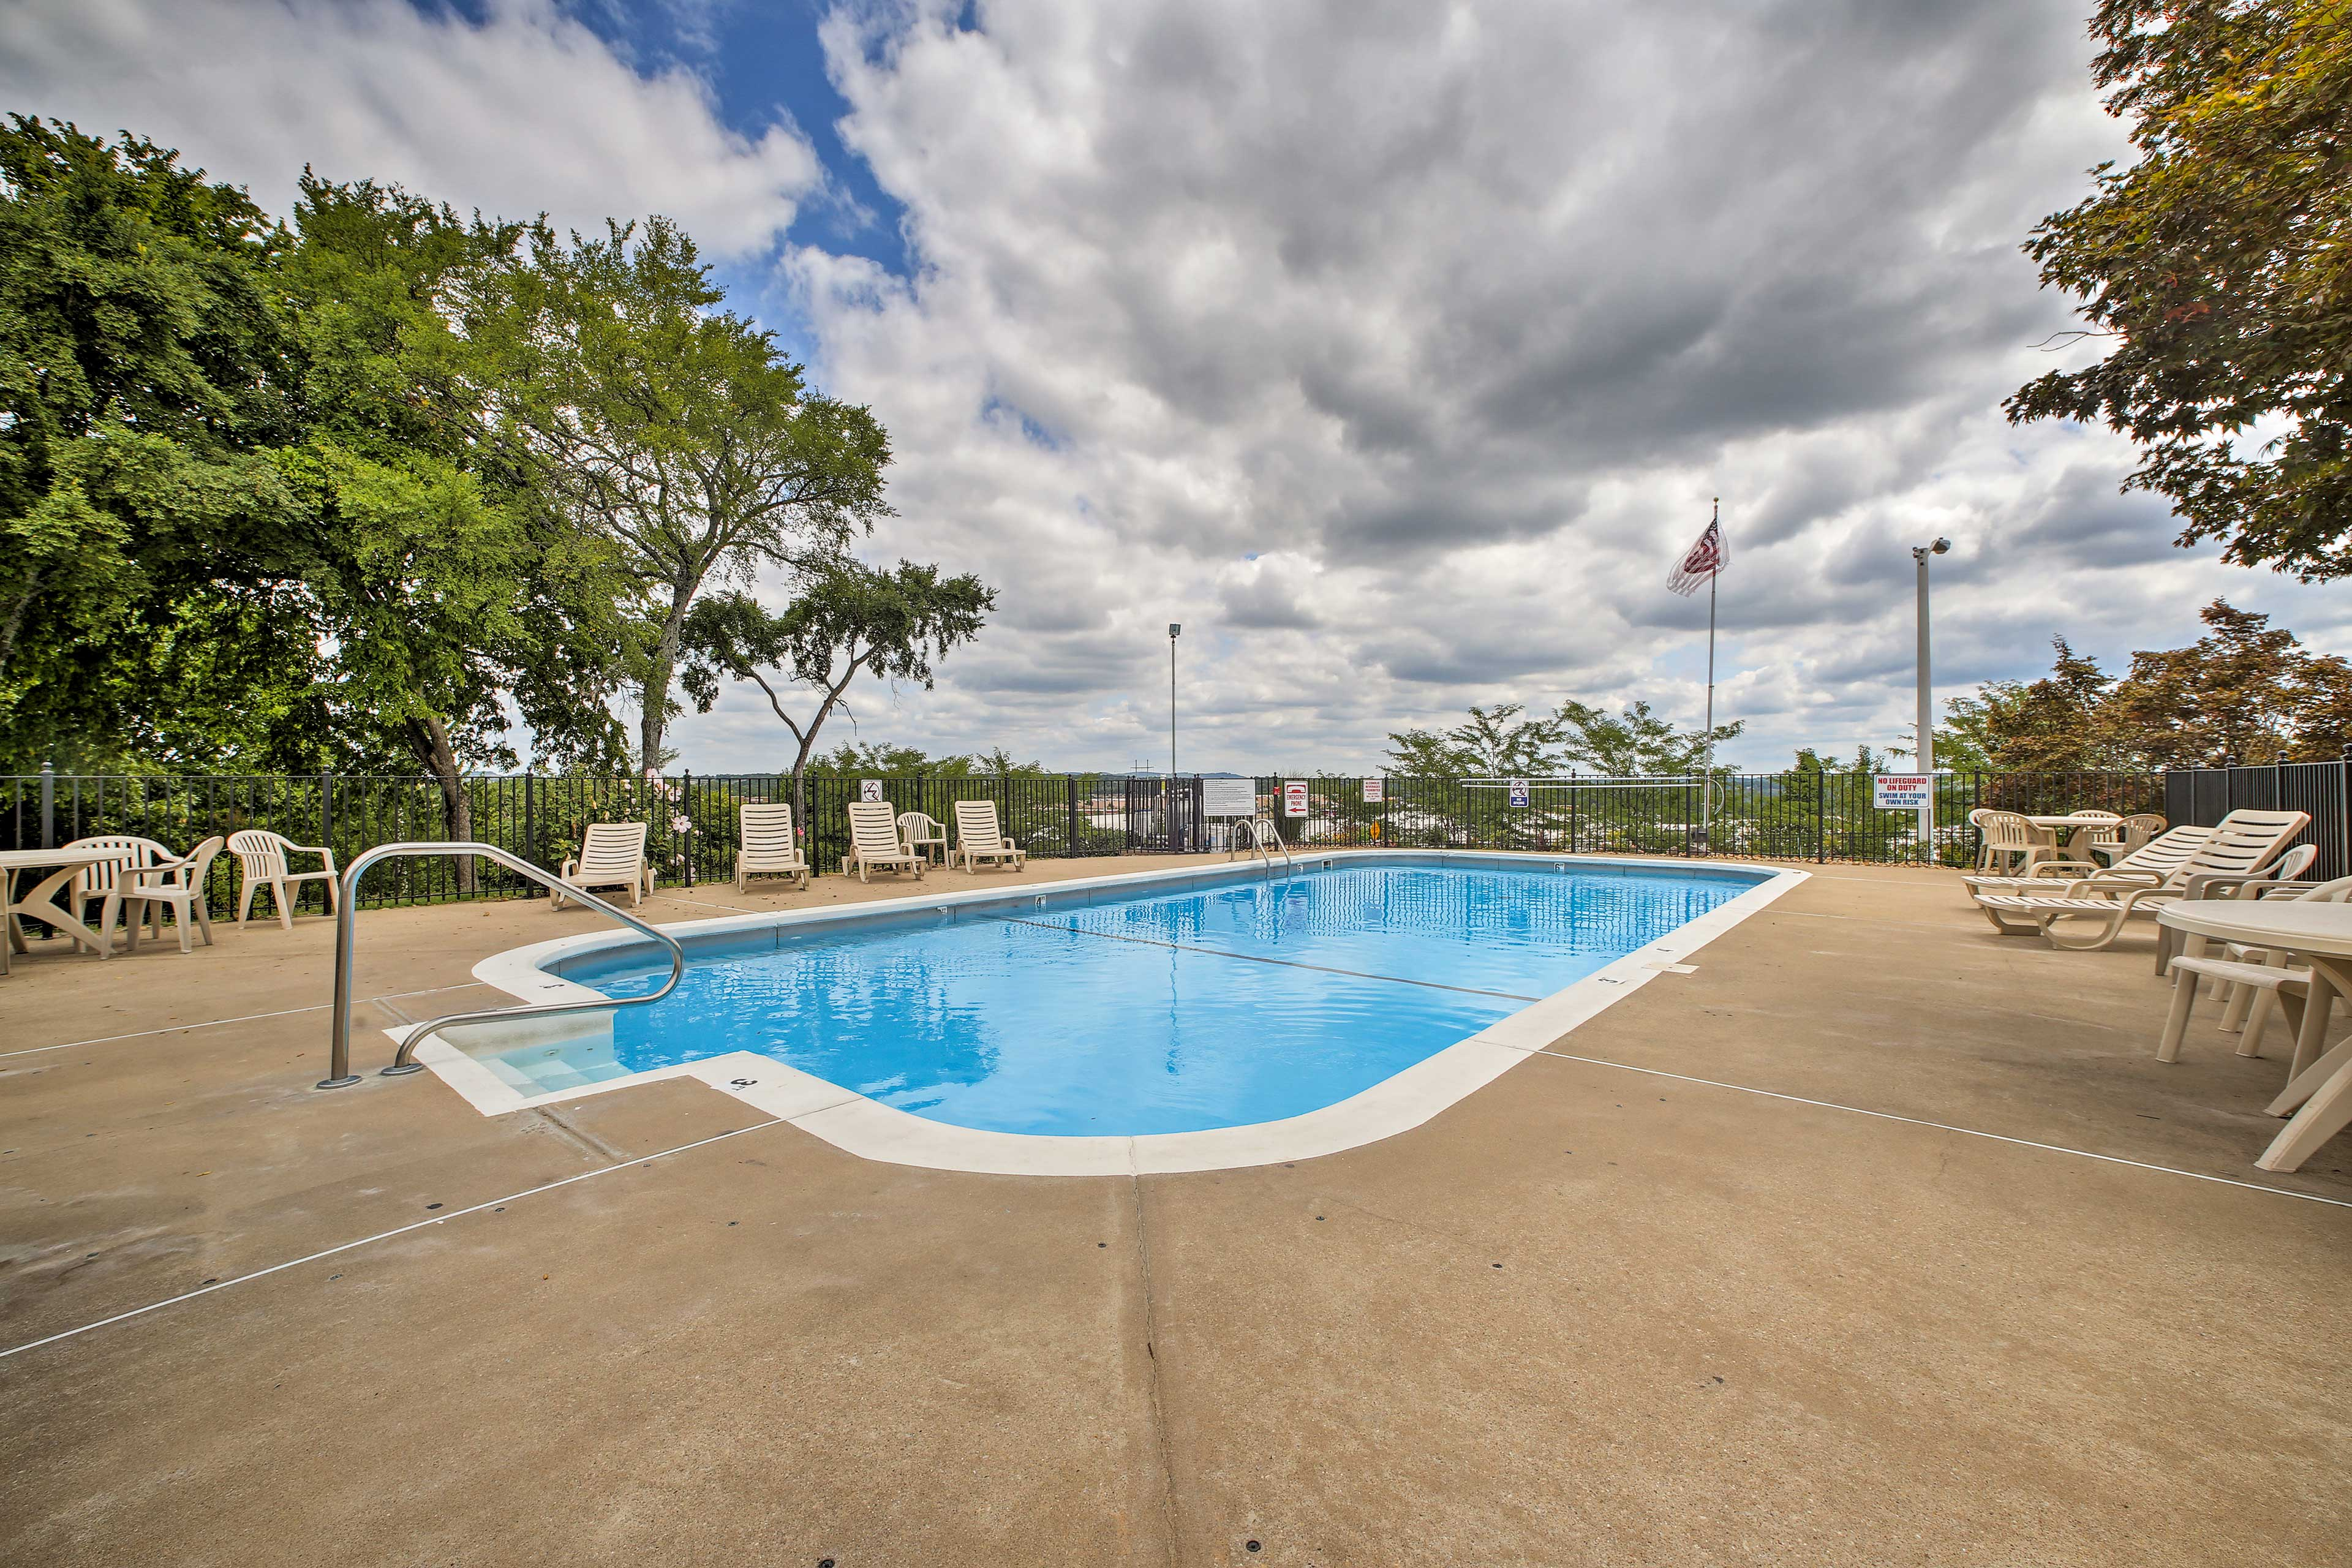 Go for a dip in the community pool on hot days!